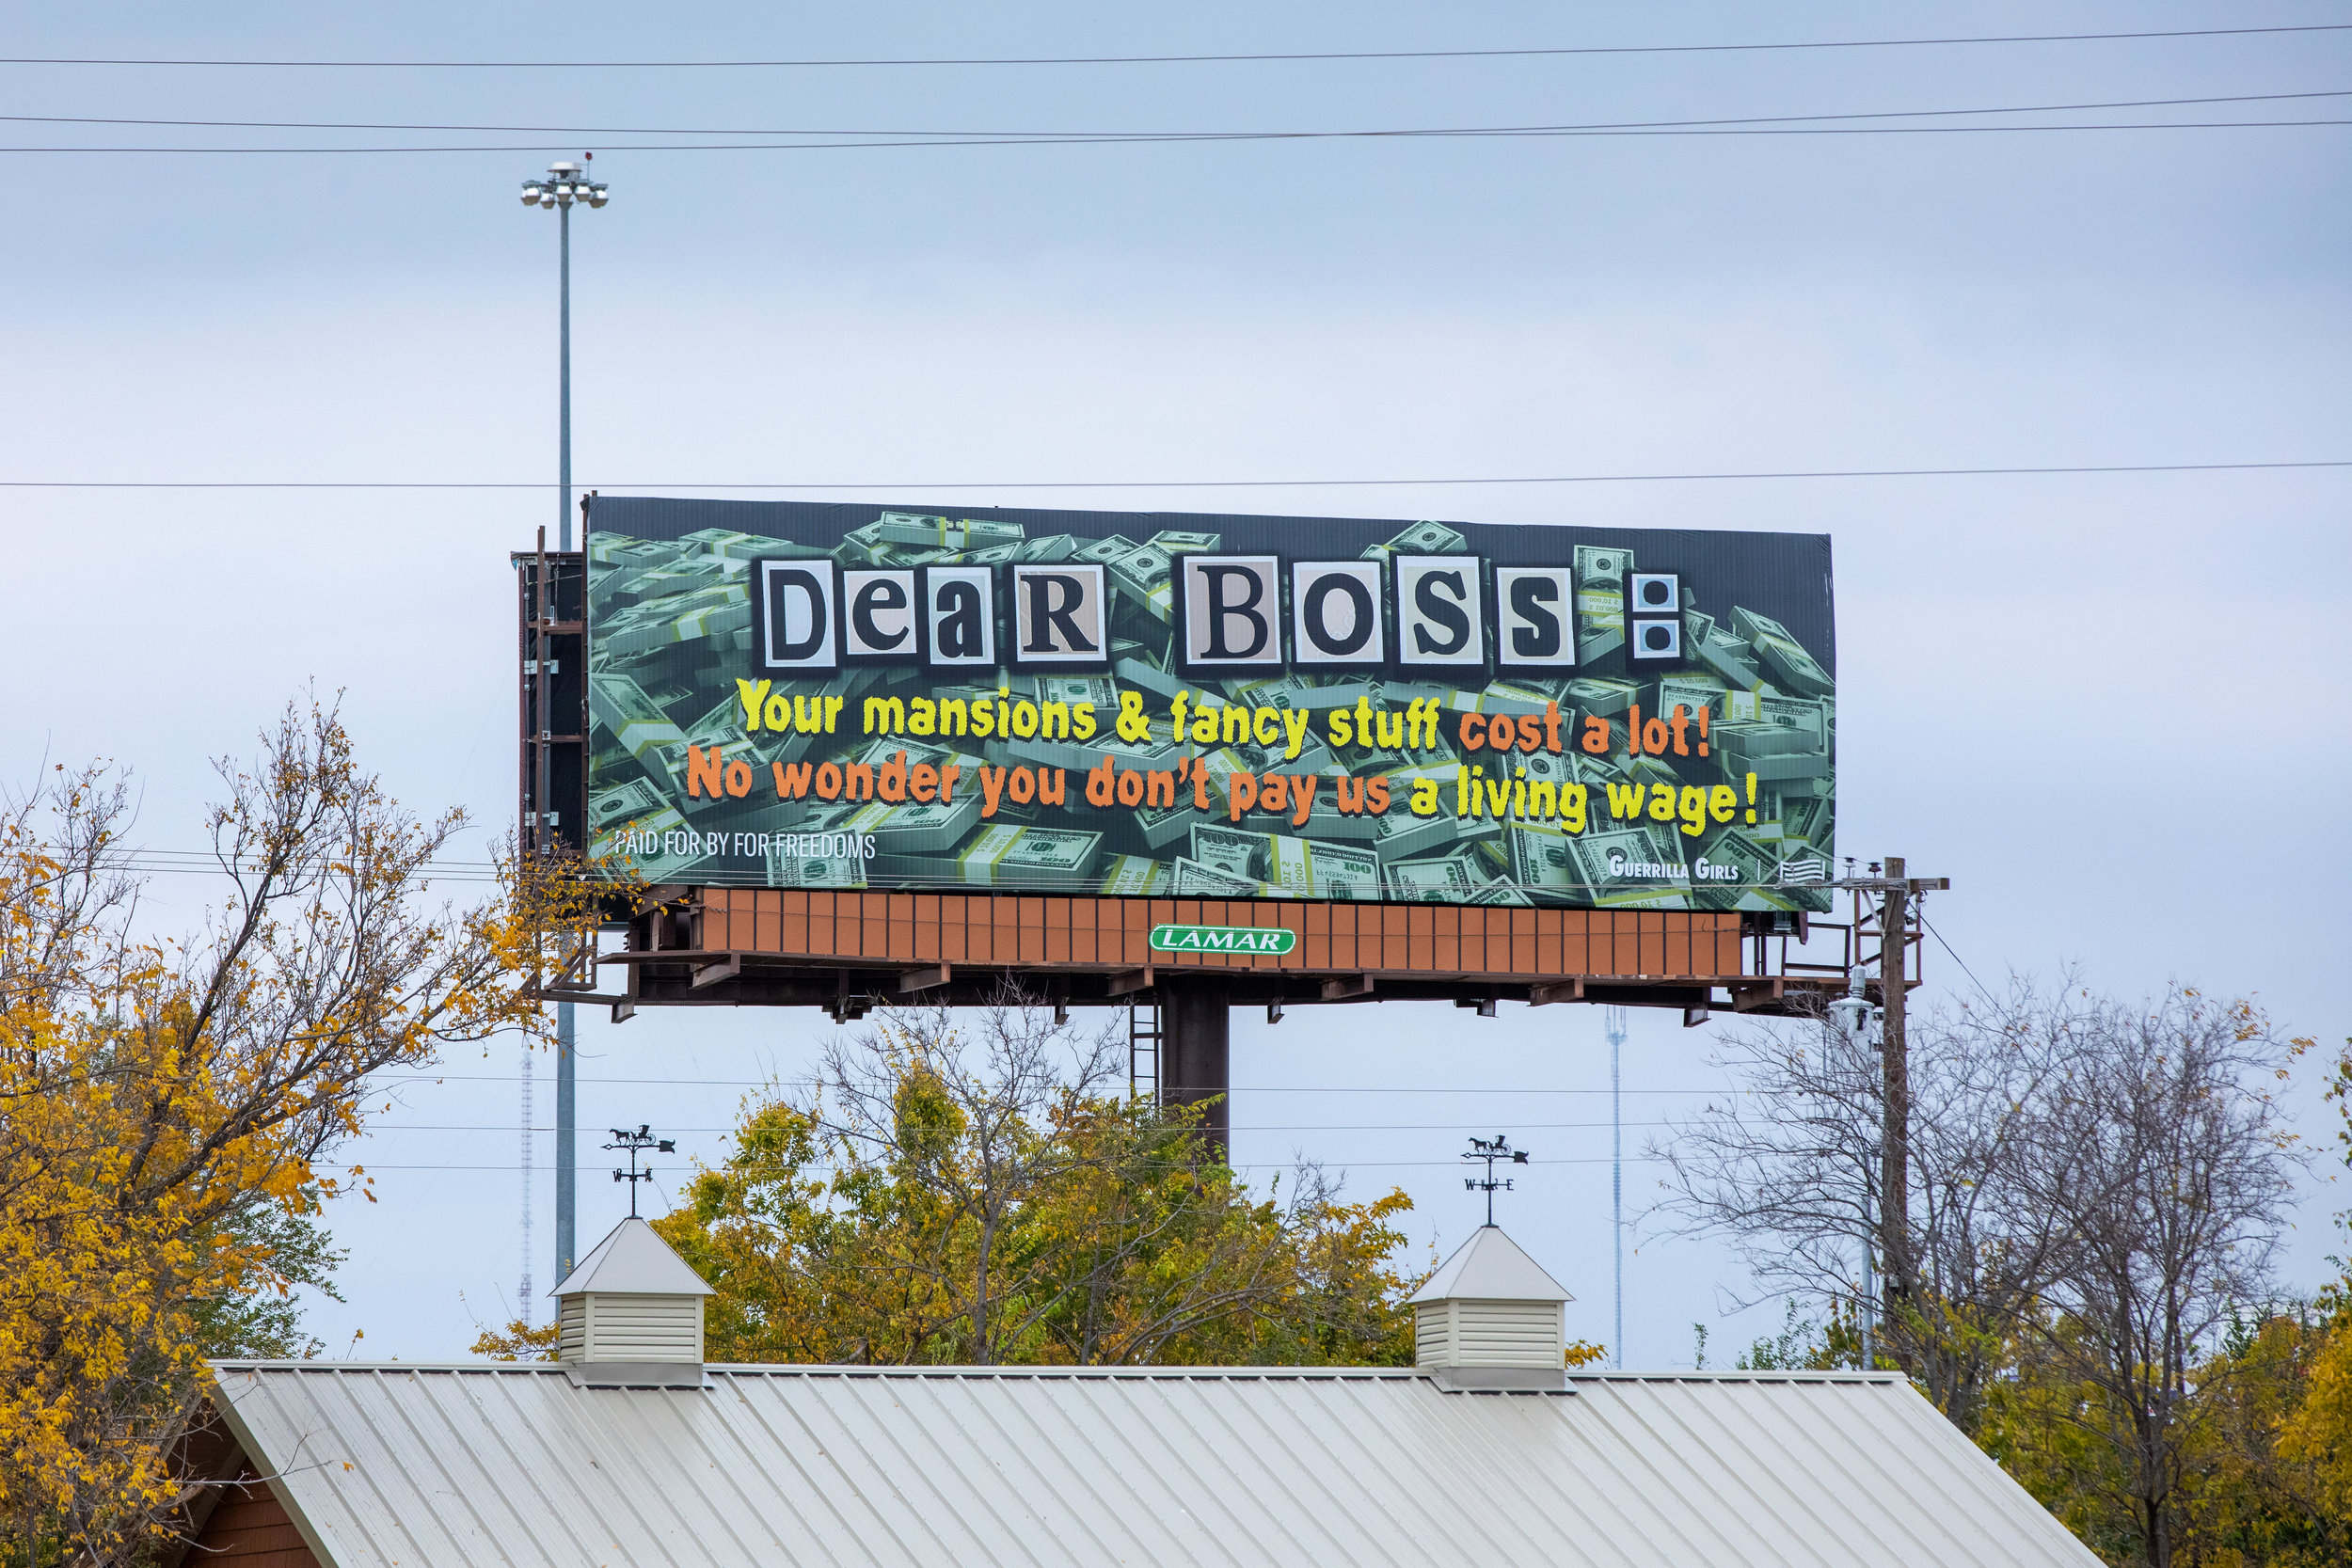 Guerrilla Girls,  Dear Boss: No Wonder You Don't Pay Us A Living Wage  (billboard), Oklahoma City, OK, 2018. Image courtesy David McNeese and For Freedoms.